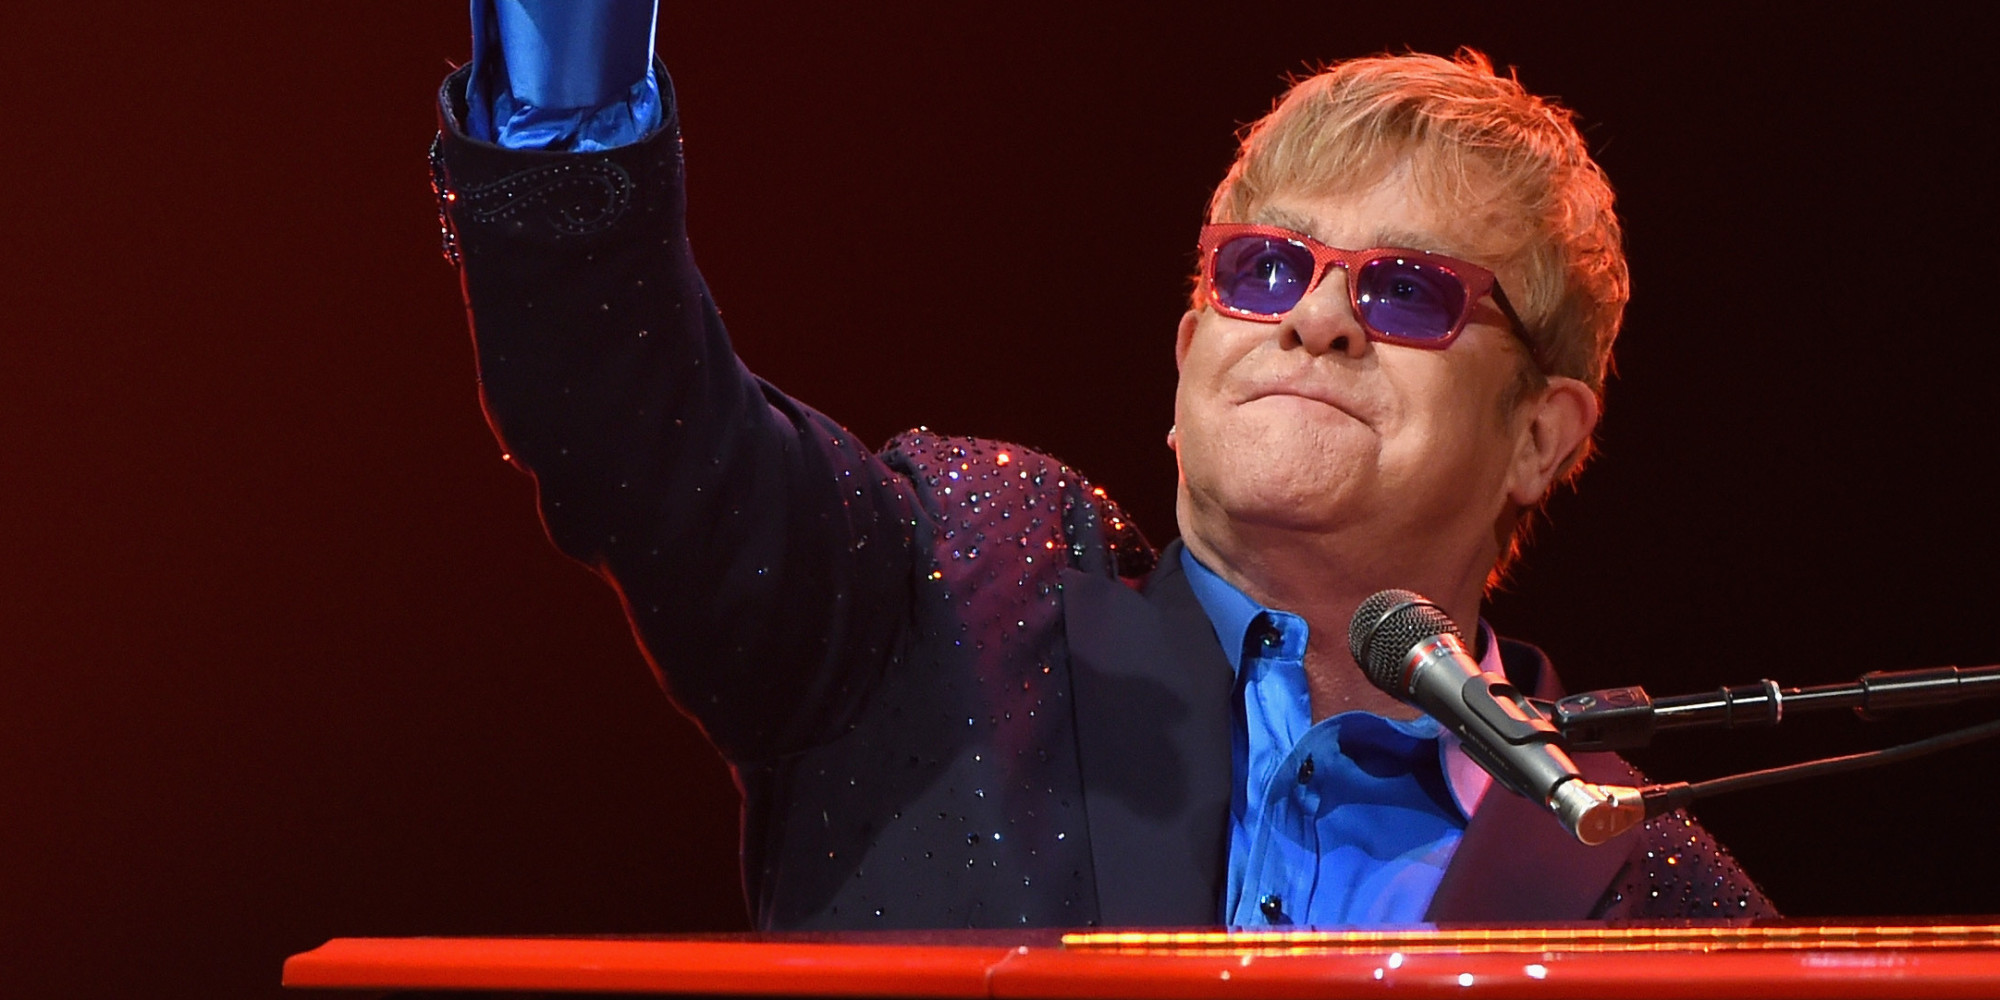 elton single parents Elton john won't be able to adopt the elton john blocked from adopting hiv-positive ukrainian child have one or both parents still living or have an.